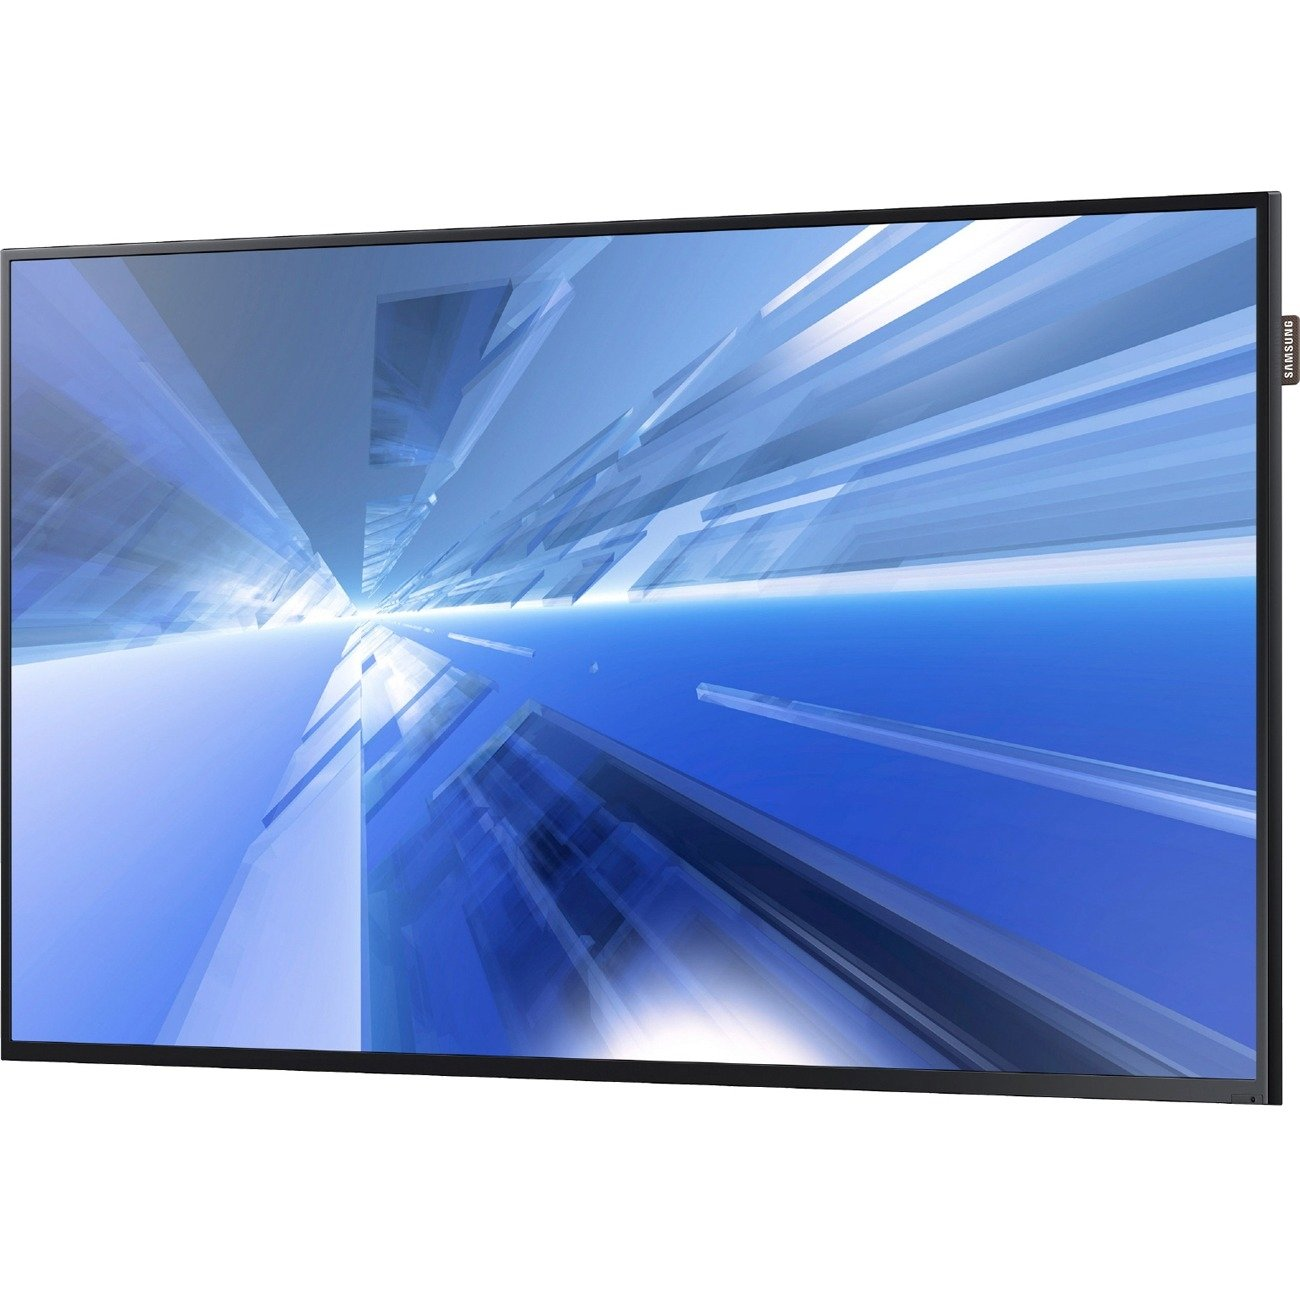 Samsung 40IN LED LCD COMM DISP 19X10 8MS TAA